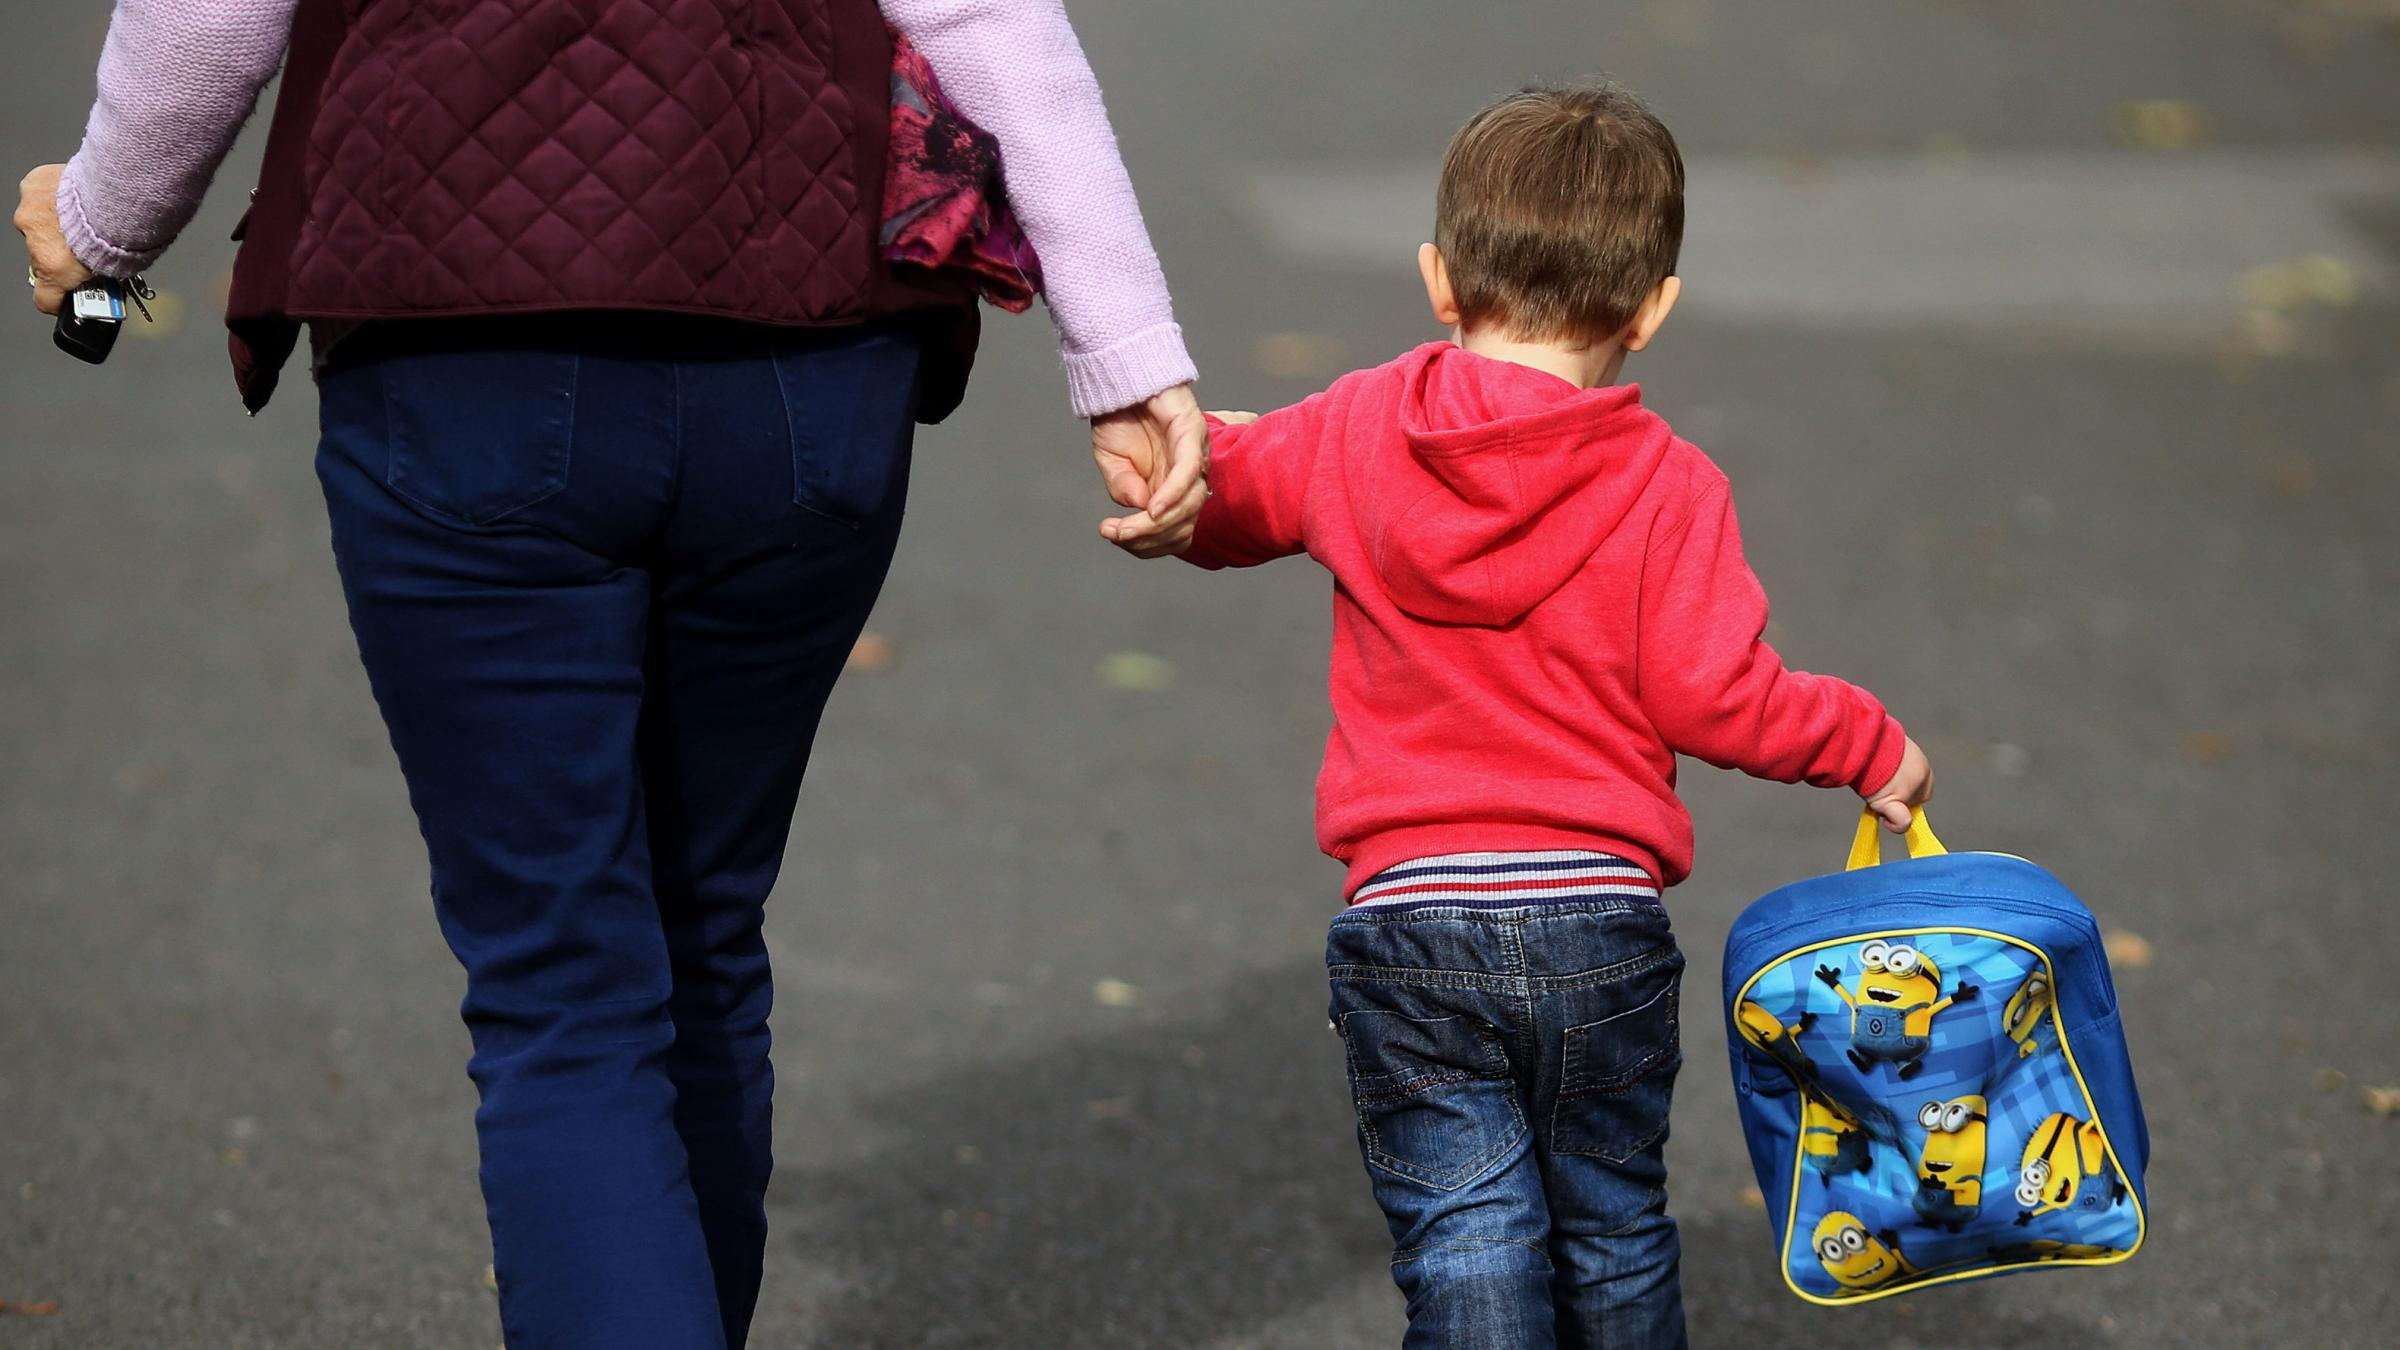 More than one in four Welsh children overweight or obese, says report